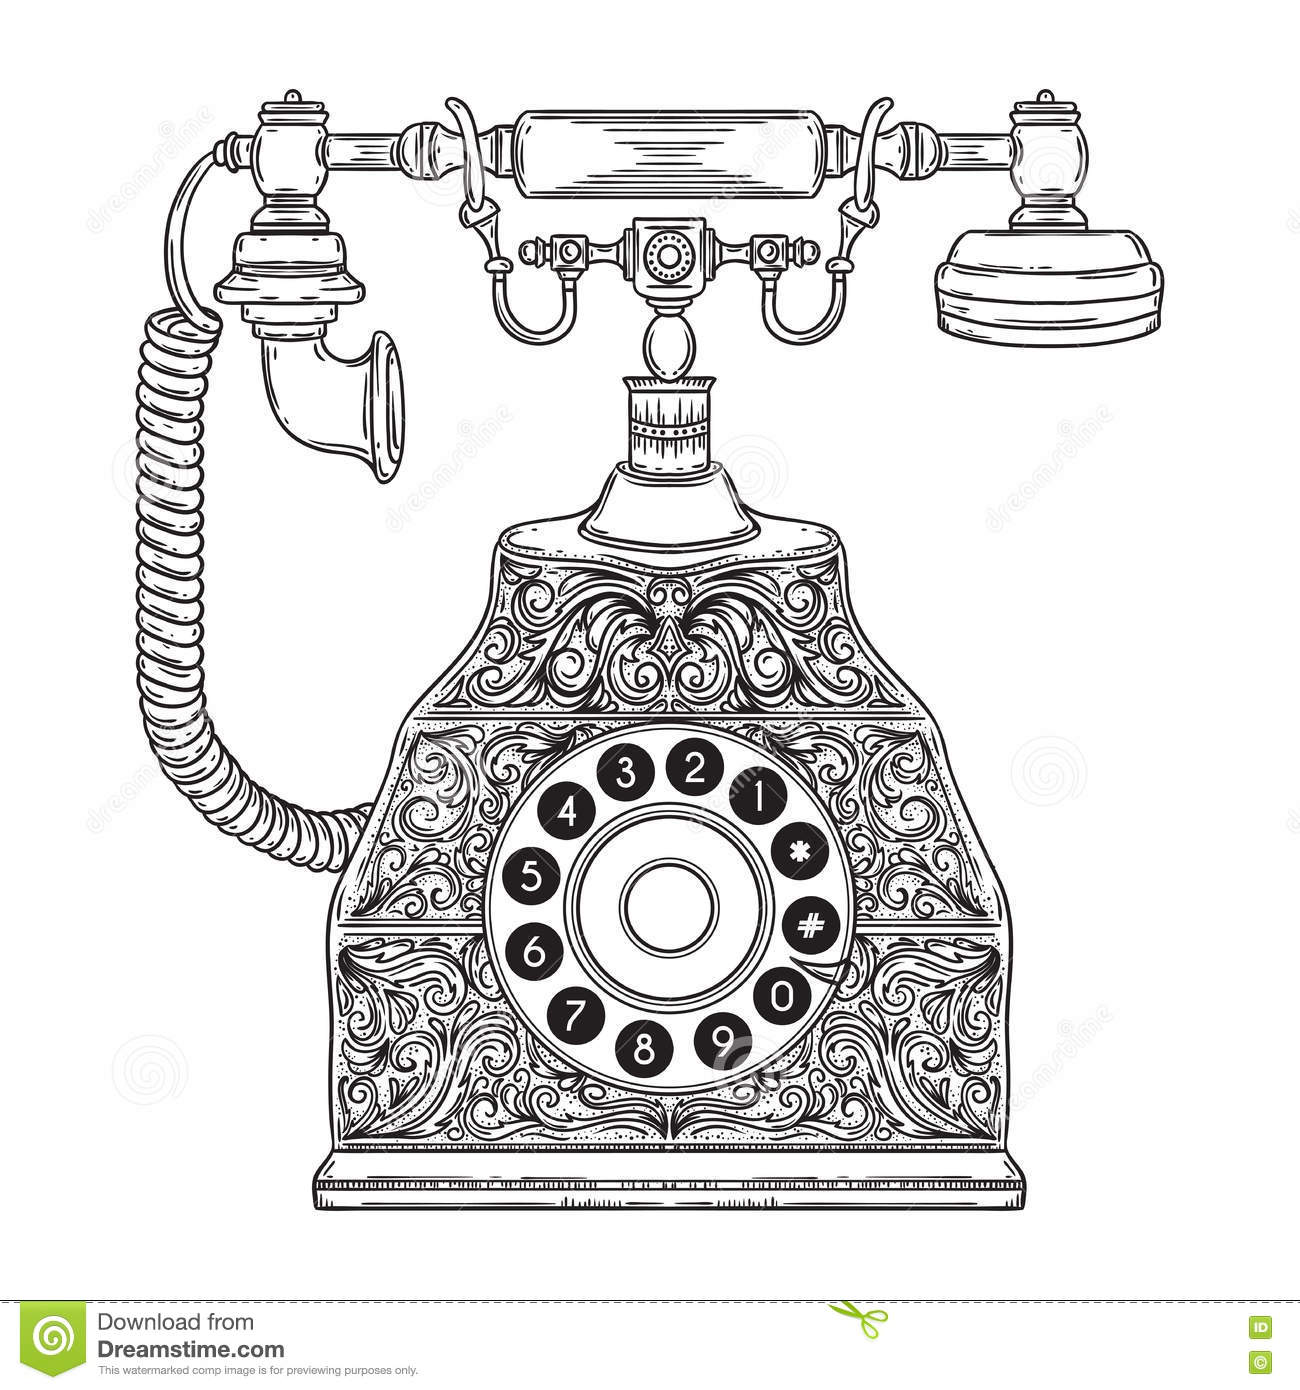 Vintage phone with floral ornament.